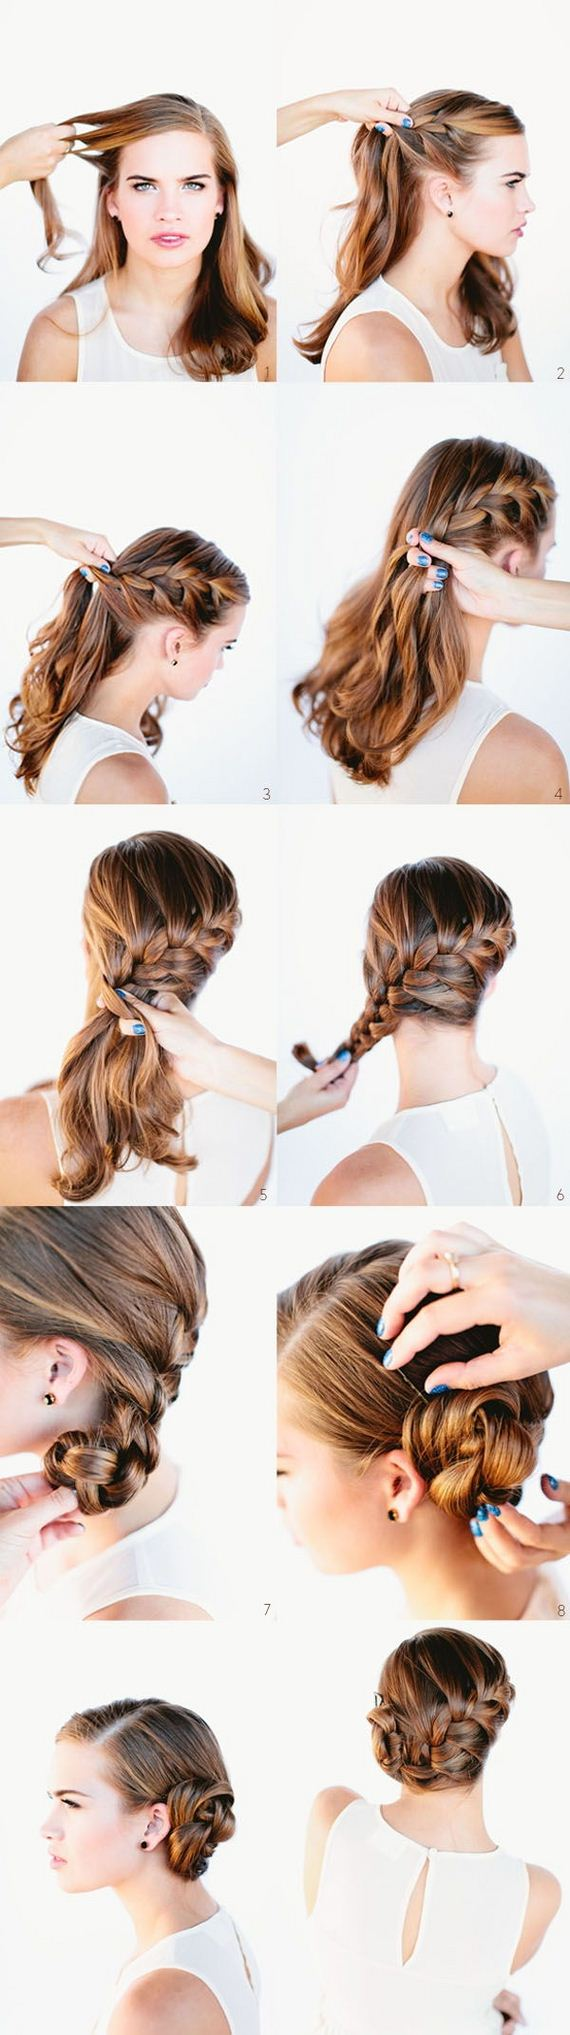 08-DIY-Side-Hairstyles